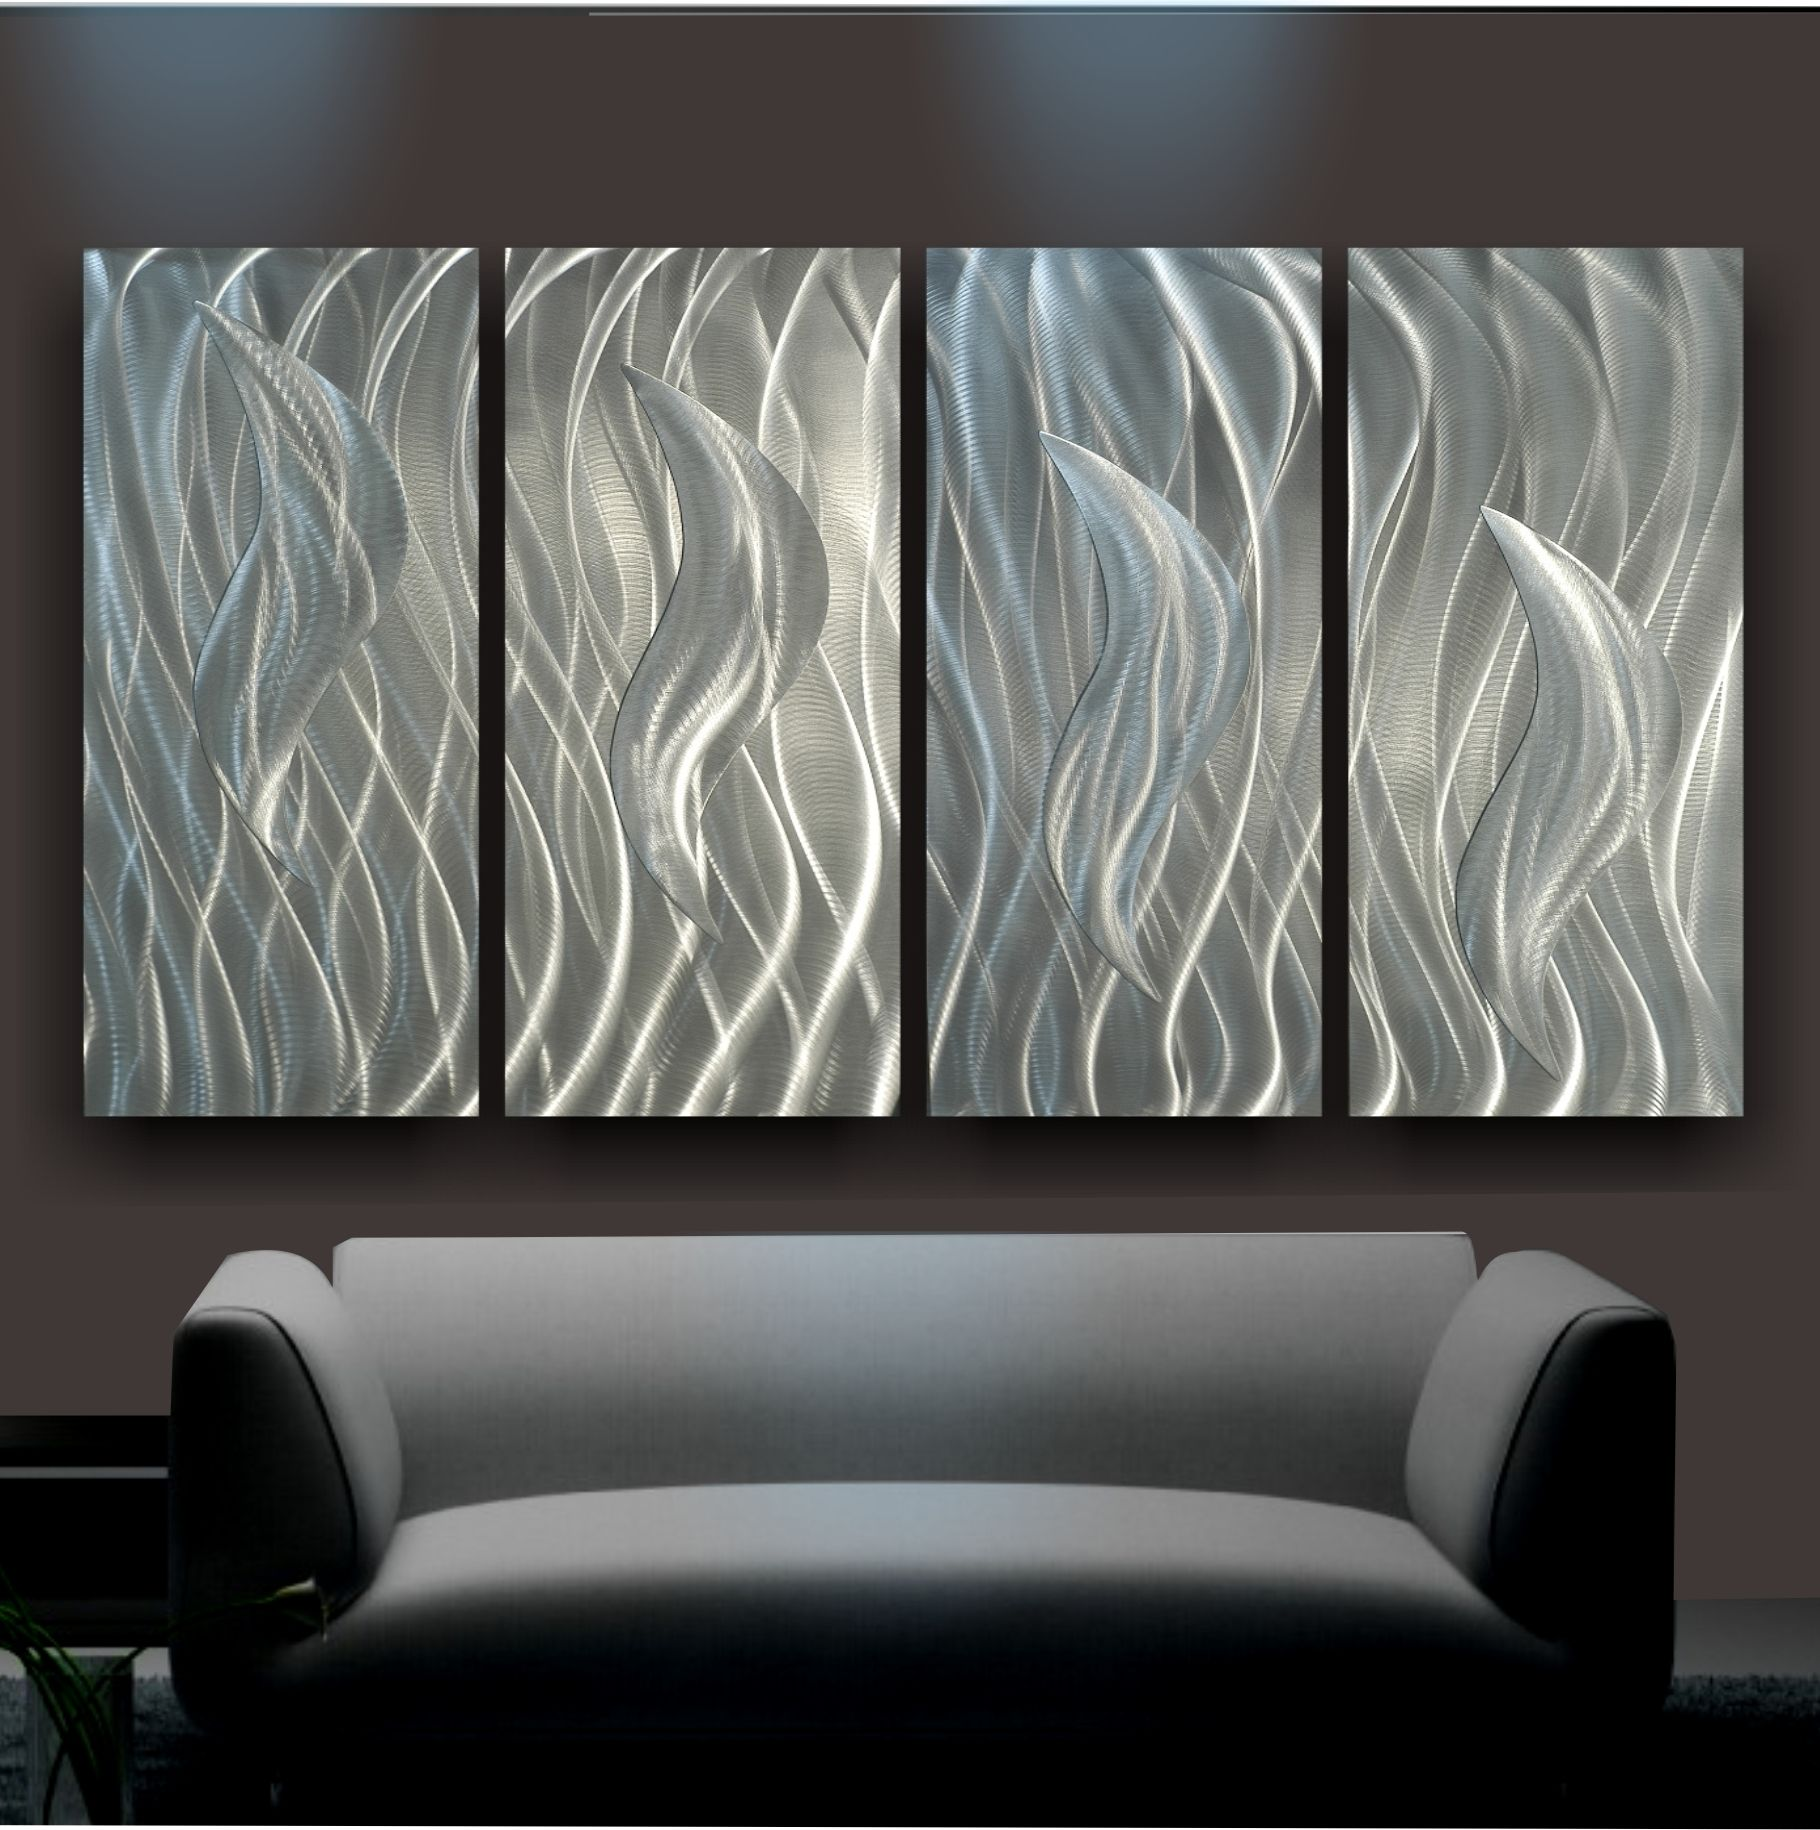 Metal Art Wall Art Steel Wall Surface Fine Art Is A Contemporary Sort Of Art Work